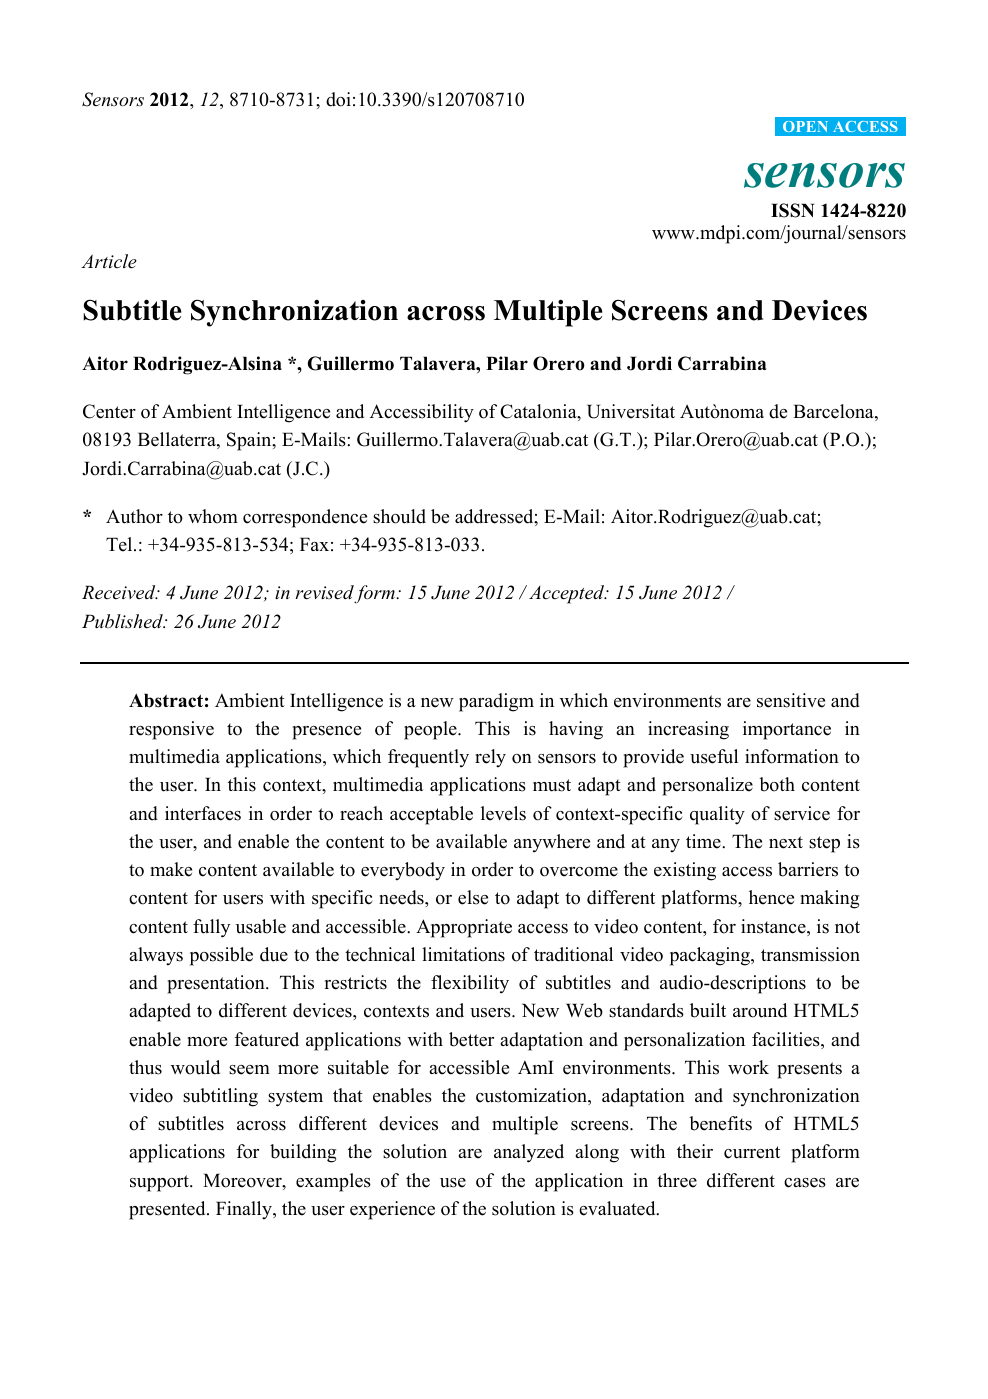 Subtitle Synchronization across Multiple Screens and Devices – topic